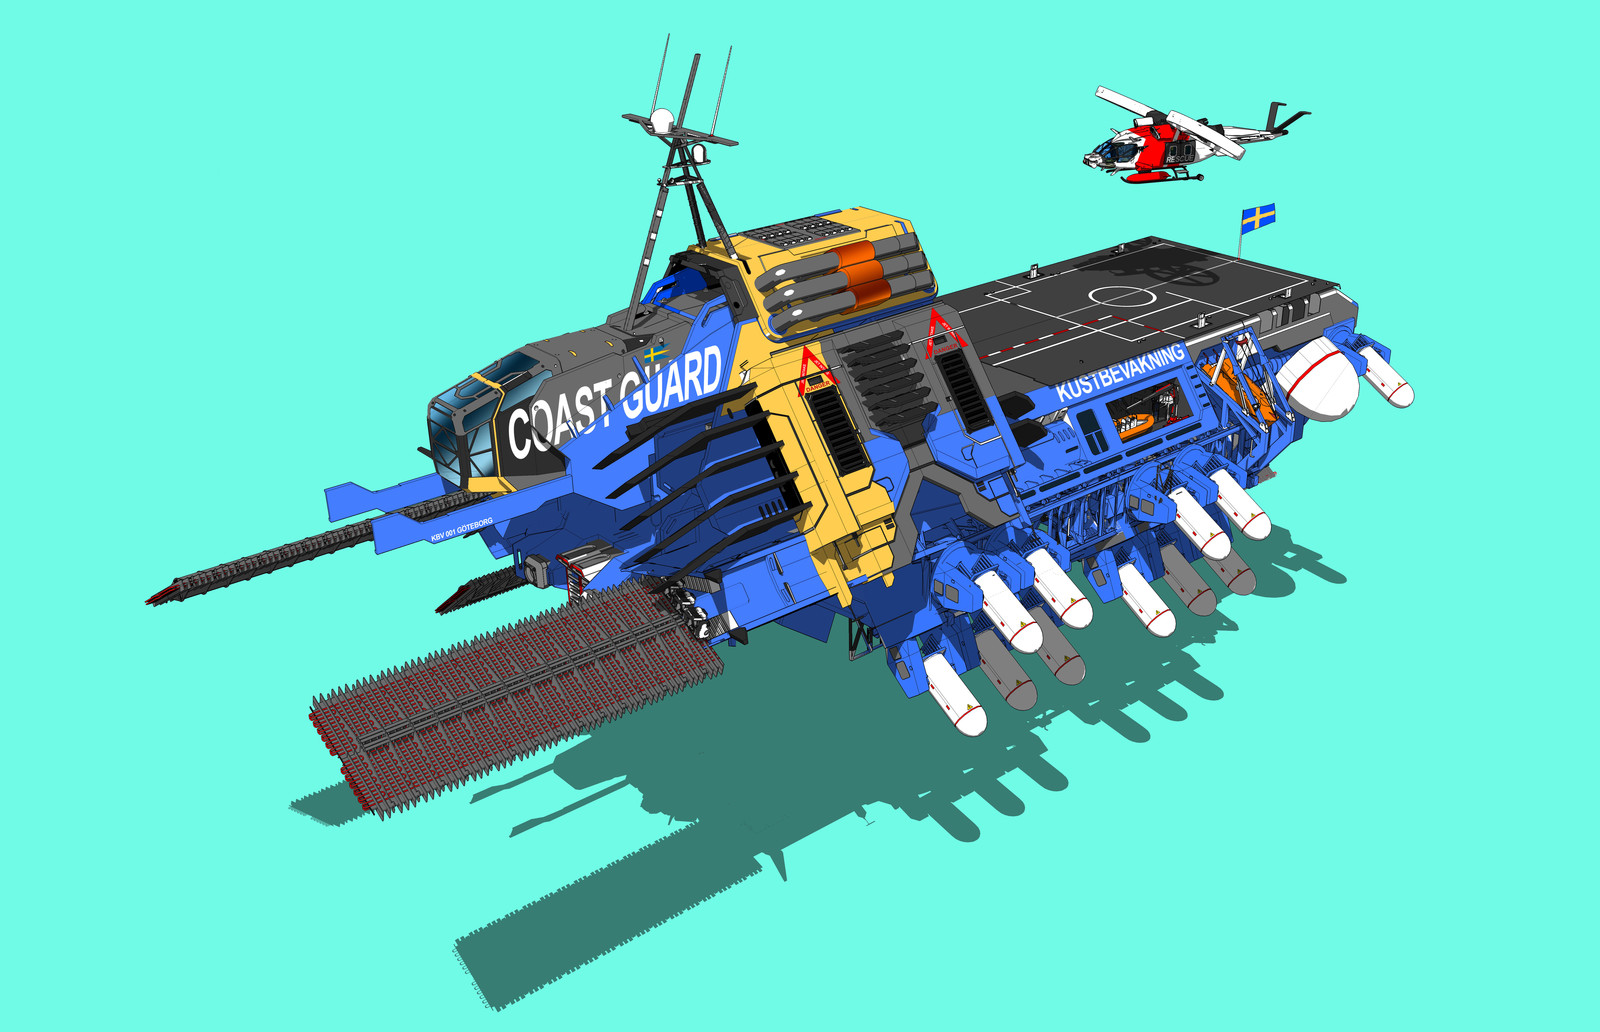 Swedish Coastguard Hovercraft